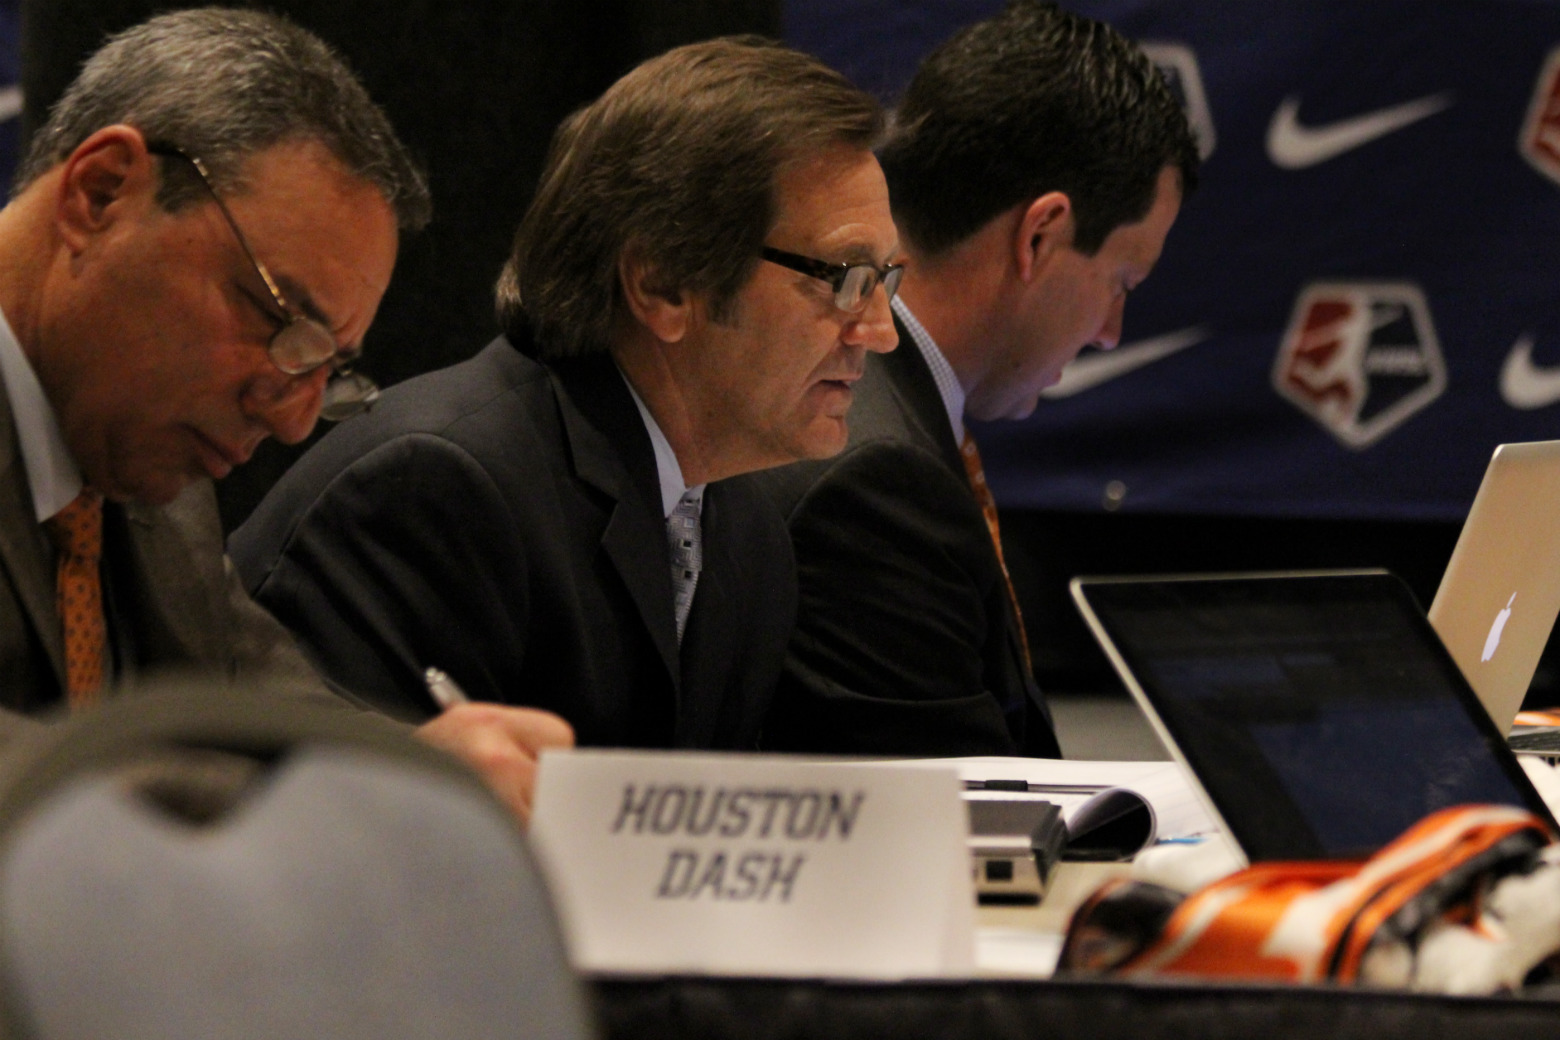 Randy Waldrum says its playoffs or bust for the Houston Dash this season. (Photo Copyright Meg Linehan for The Equalizer)